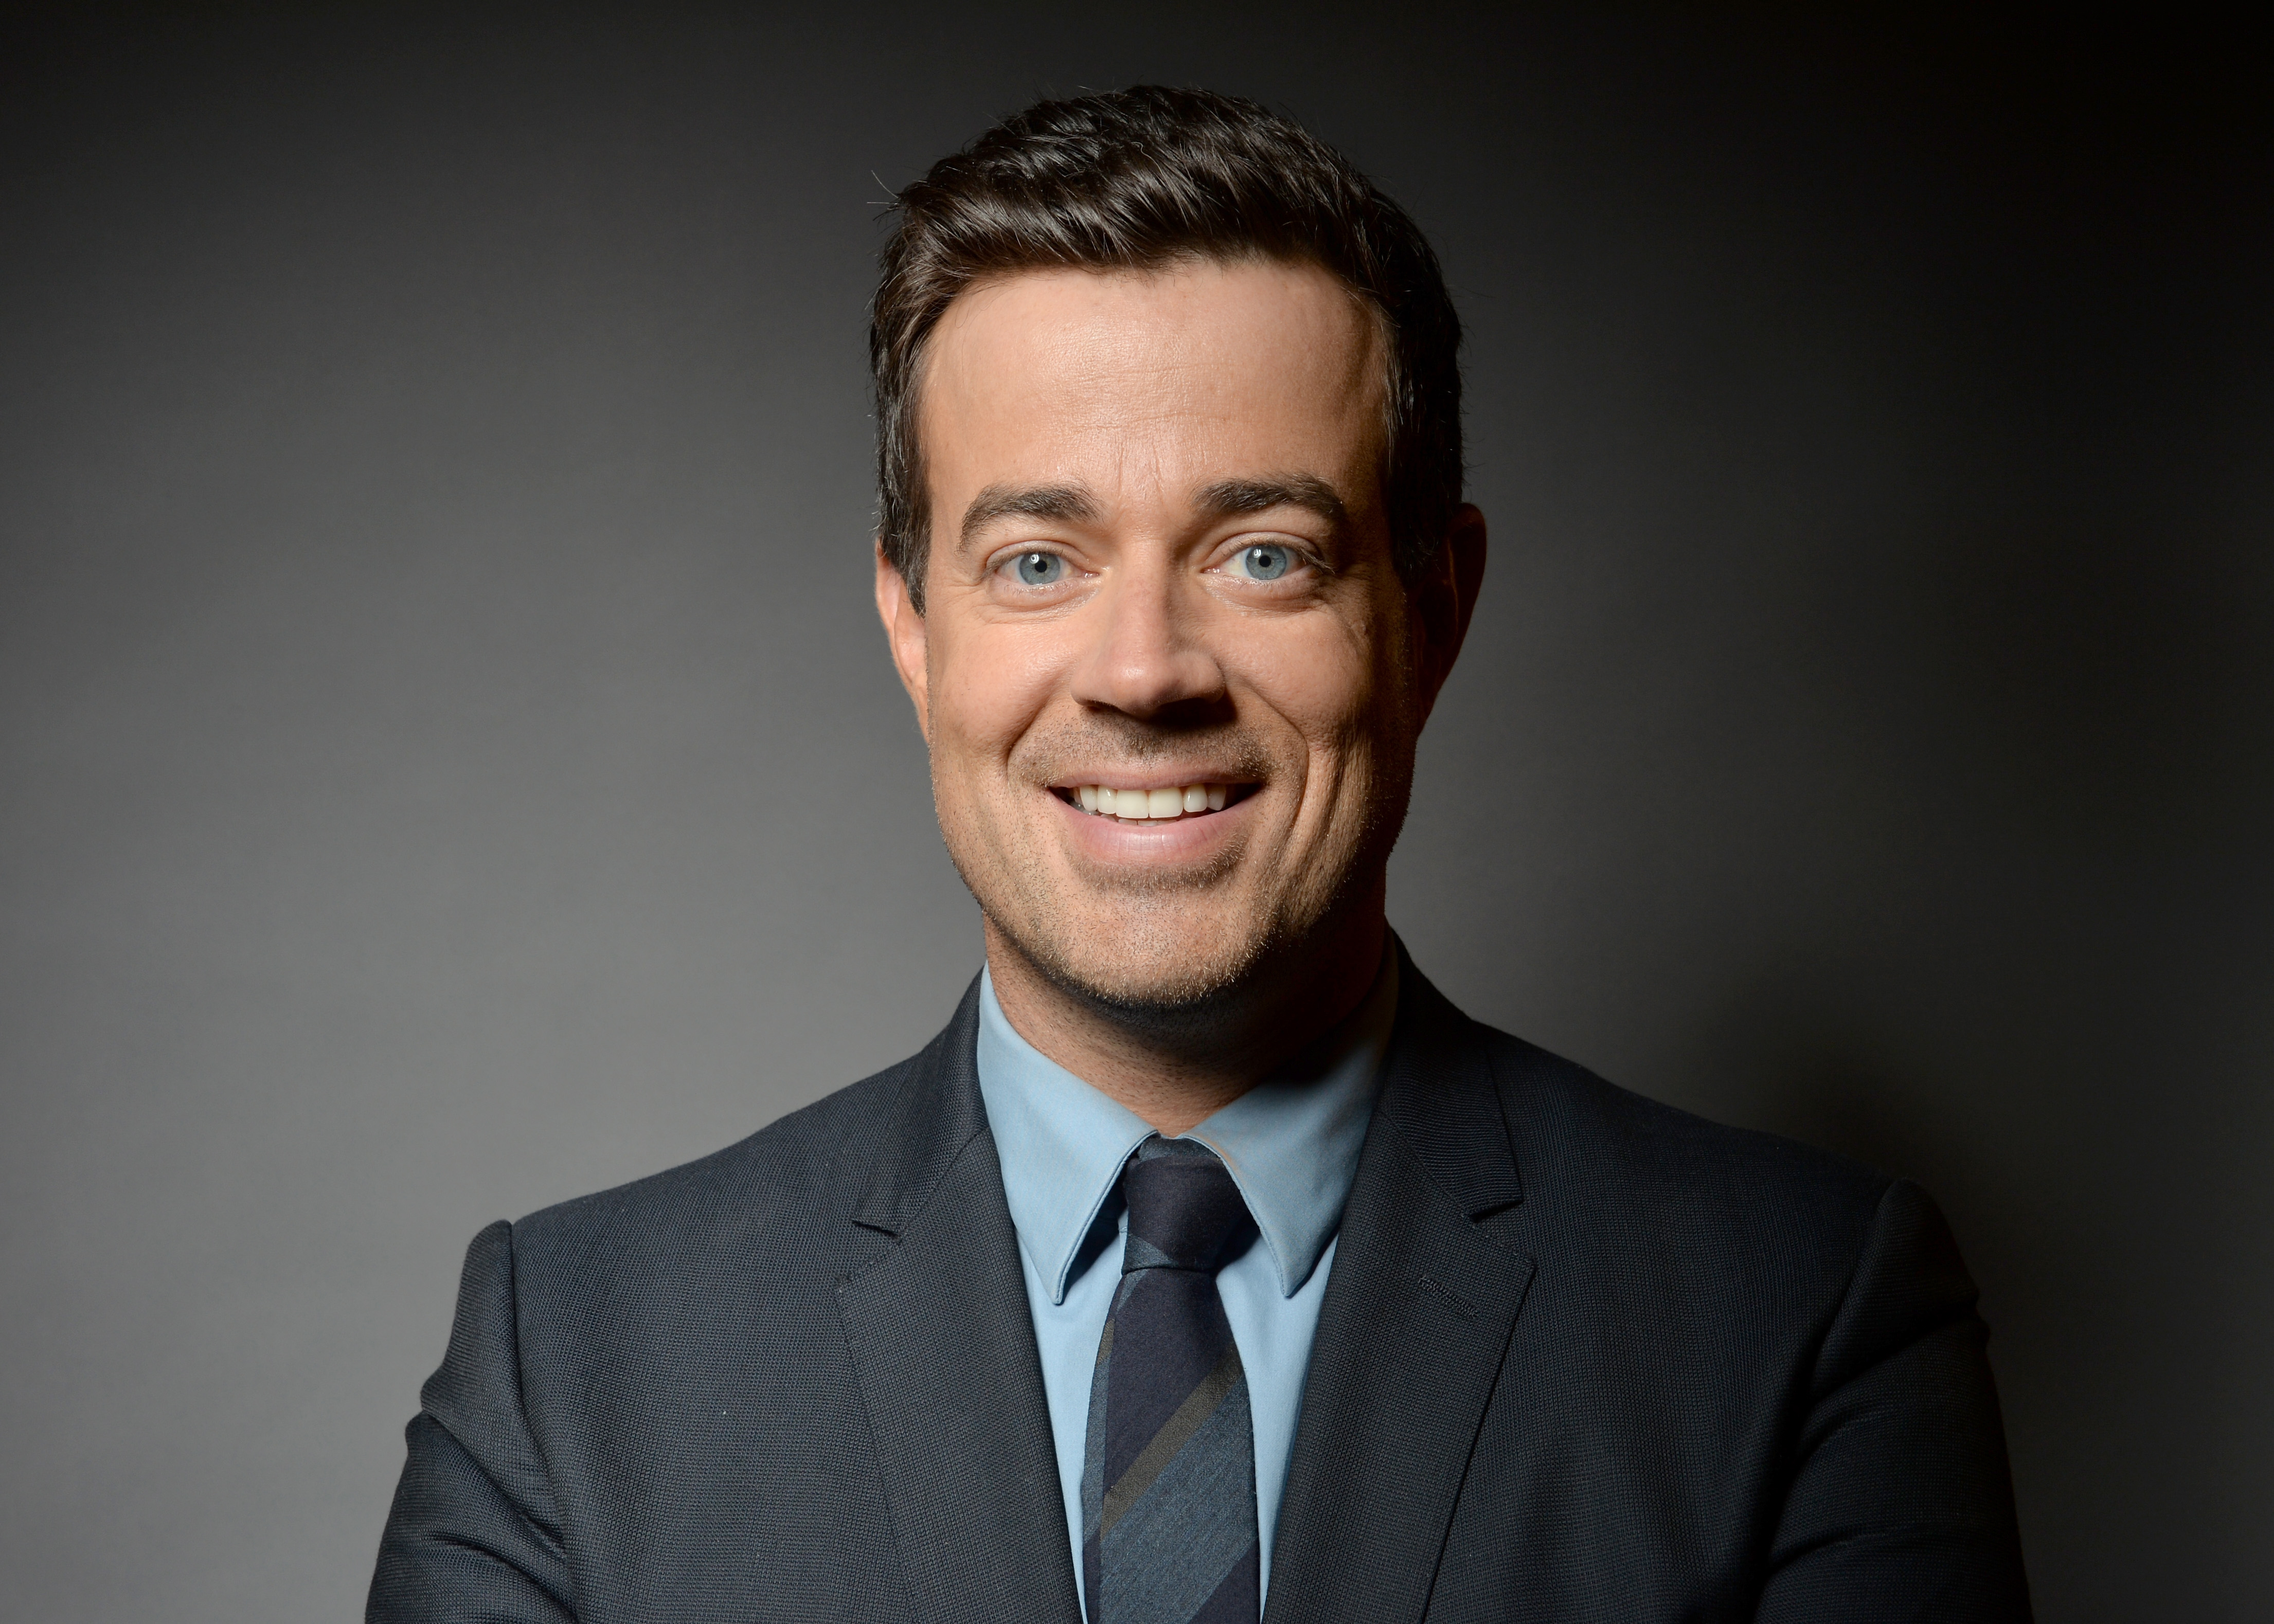 Carson Daly Opens up About Anxiety Battle on Today Show